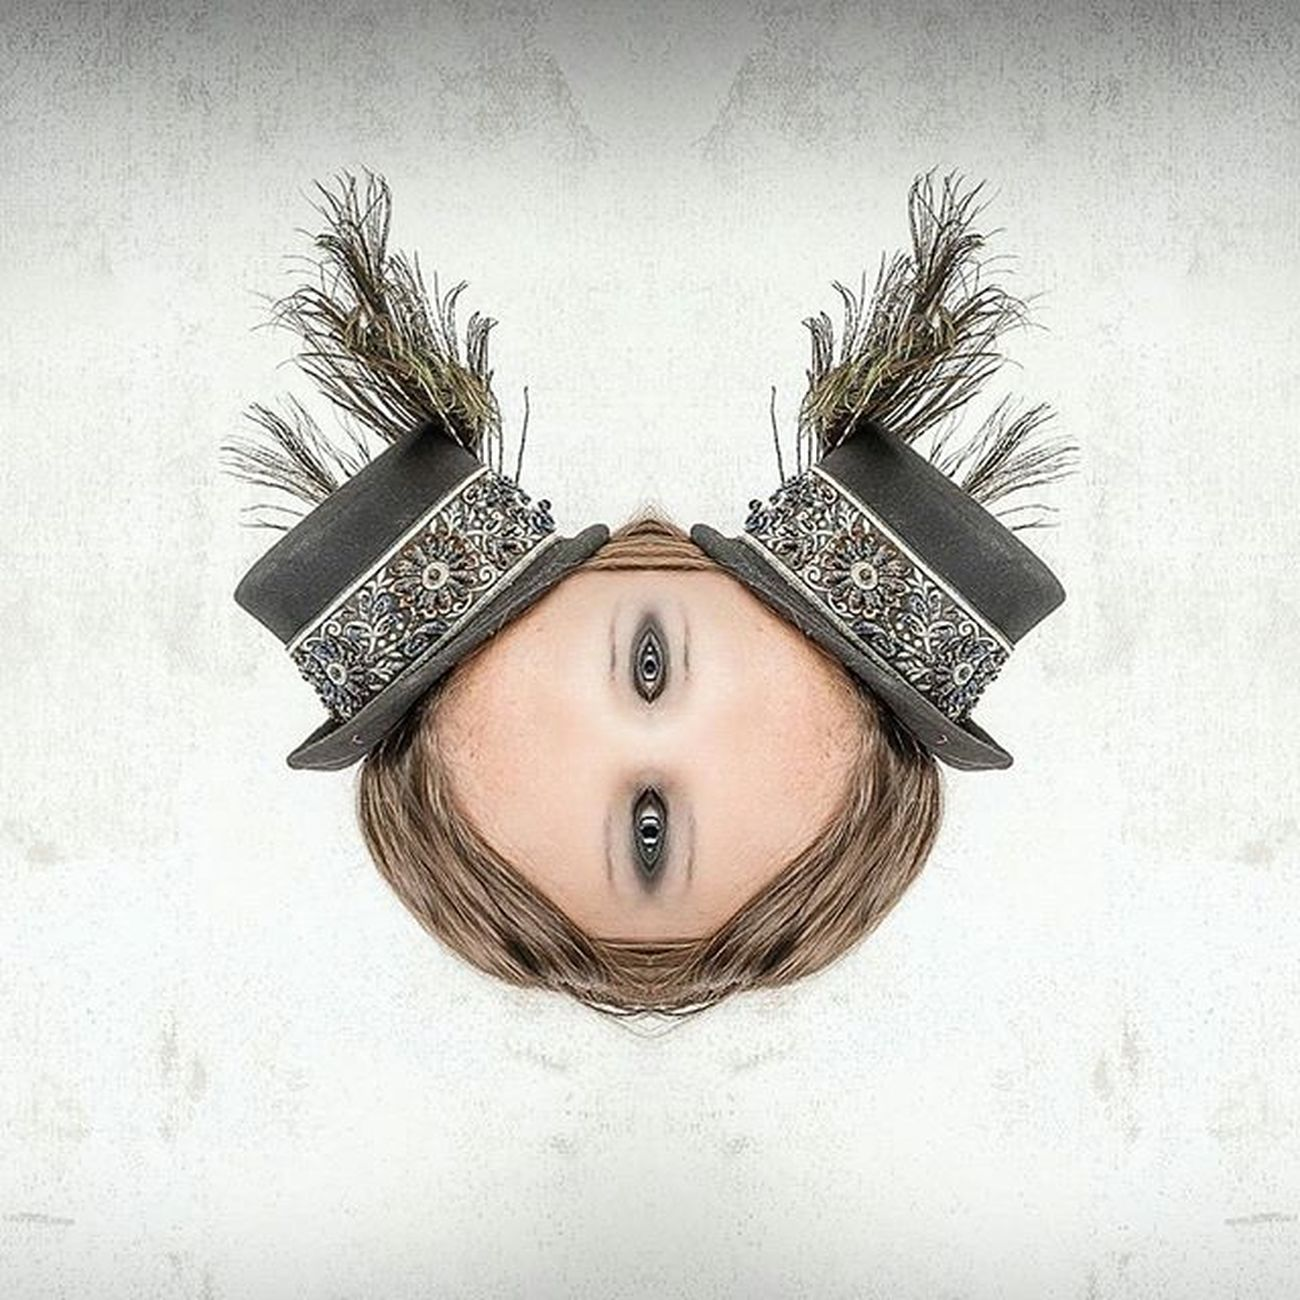 Crazy Weirdfaces Symmetry Mad weird